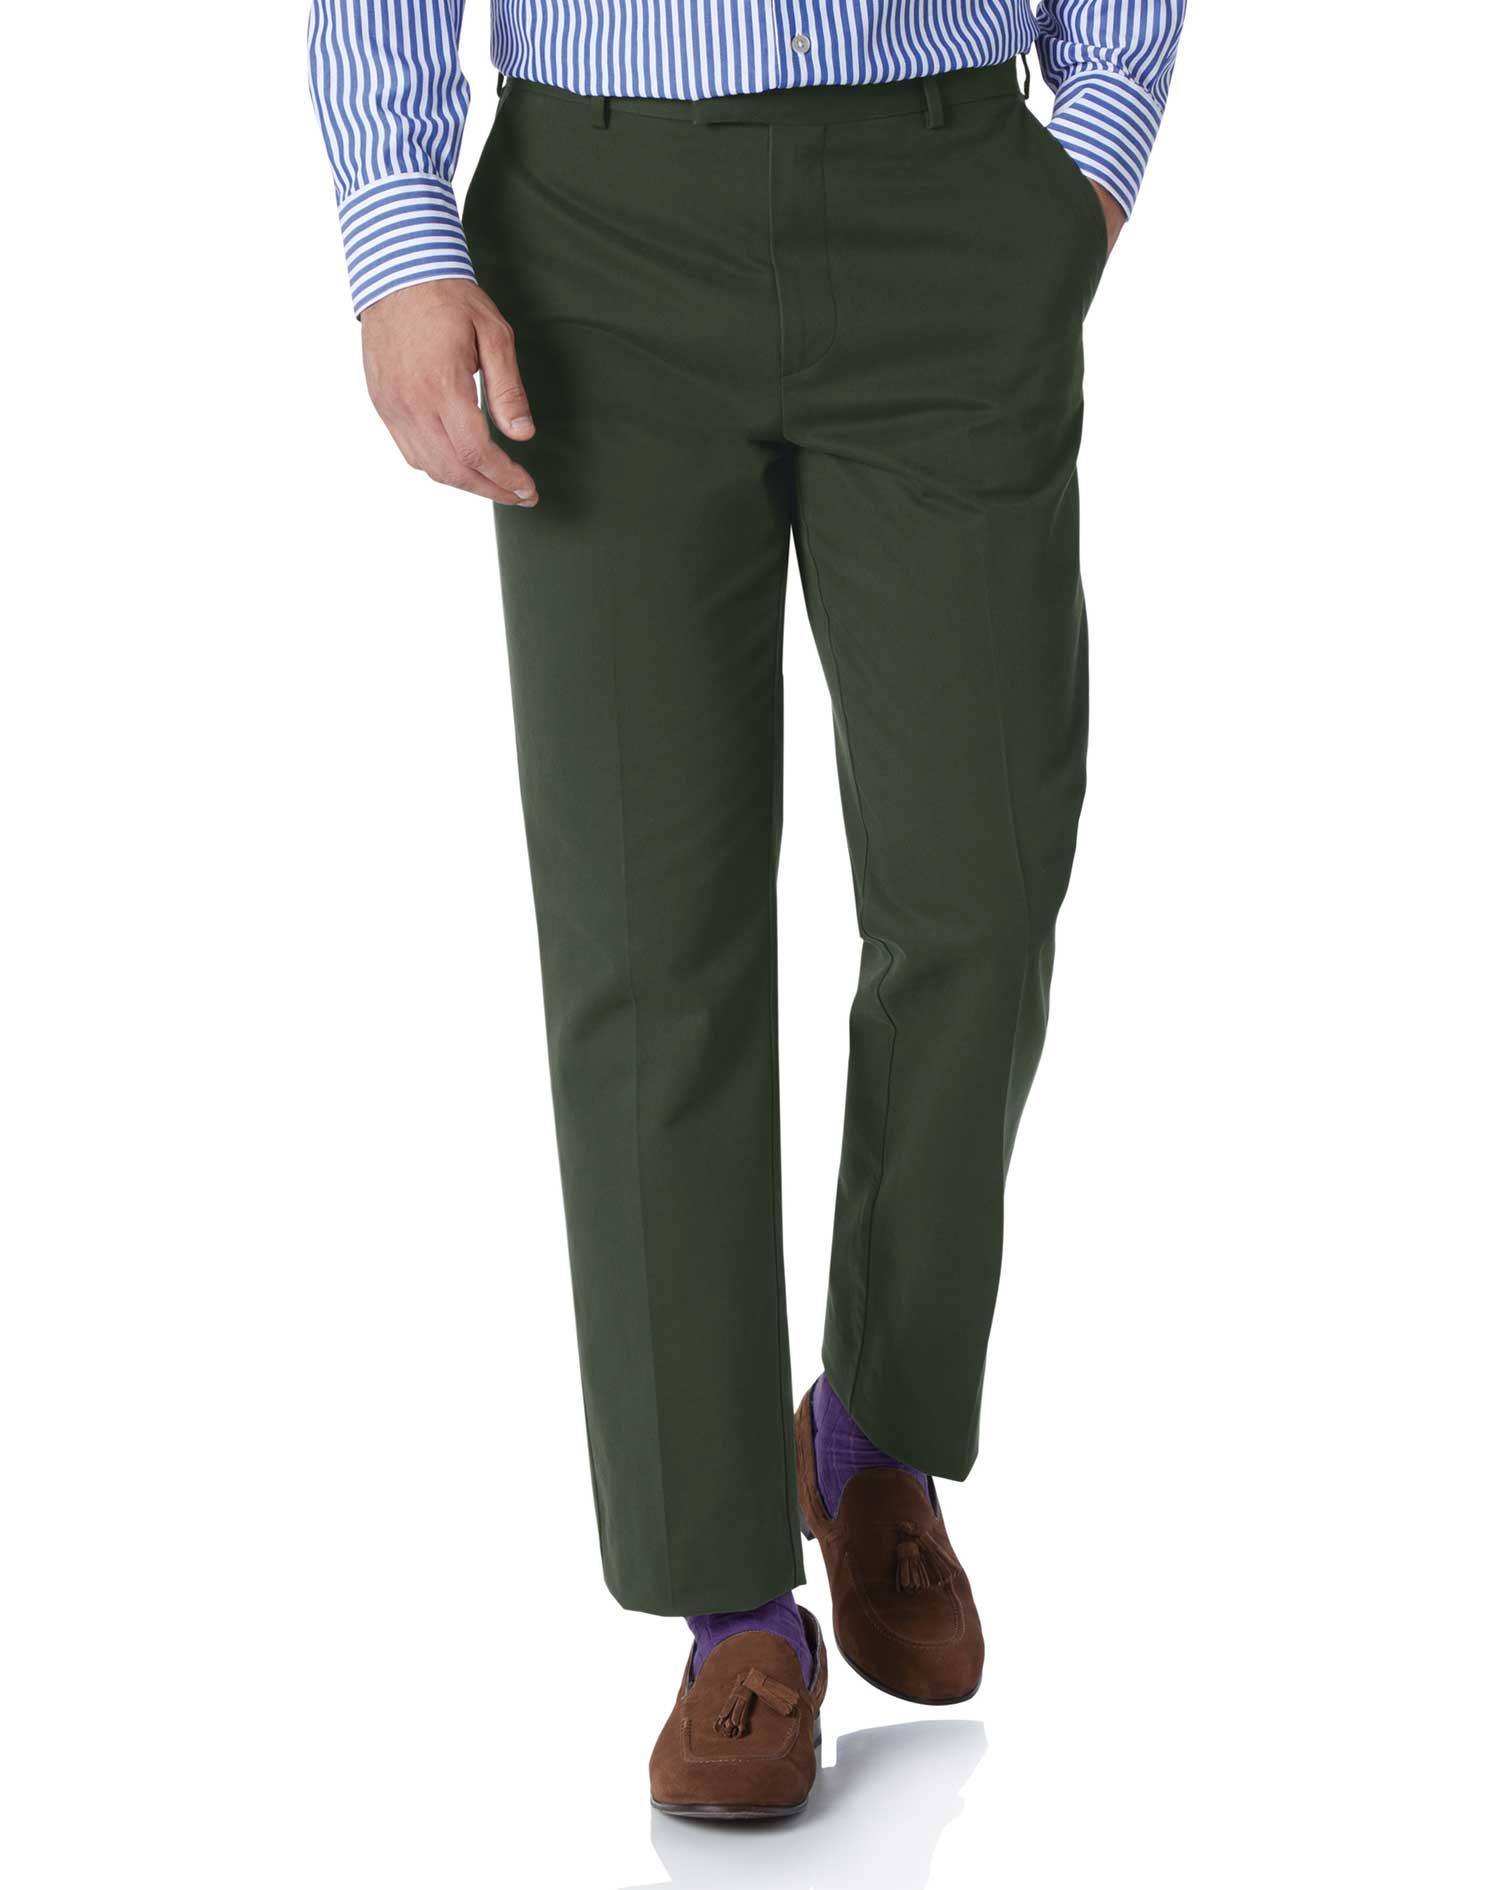 Dark Green Classic Fit Flat Front Non-Iron Cotton Chino Trousers Size W40 L30 by Charles Tyrwhitt